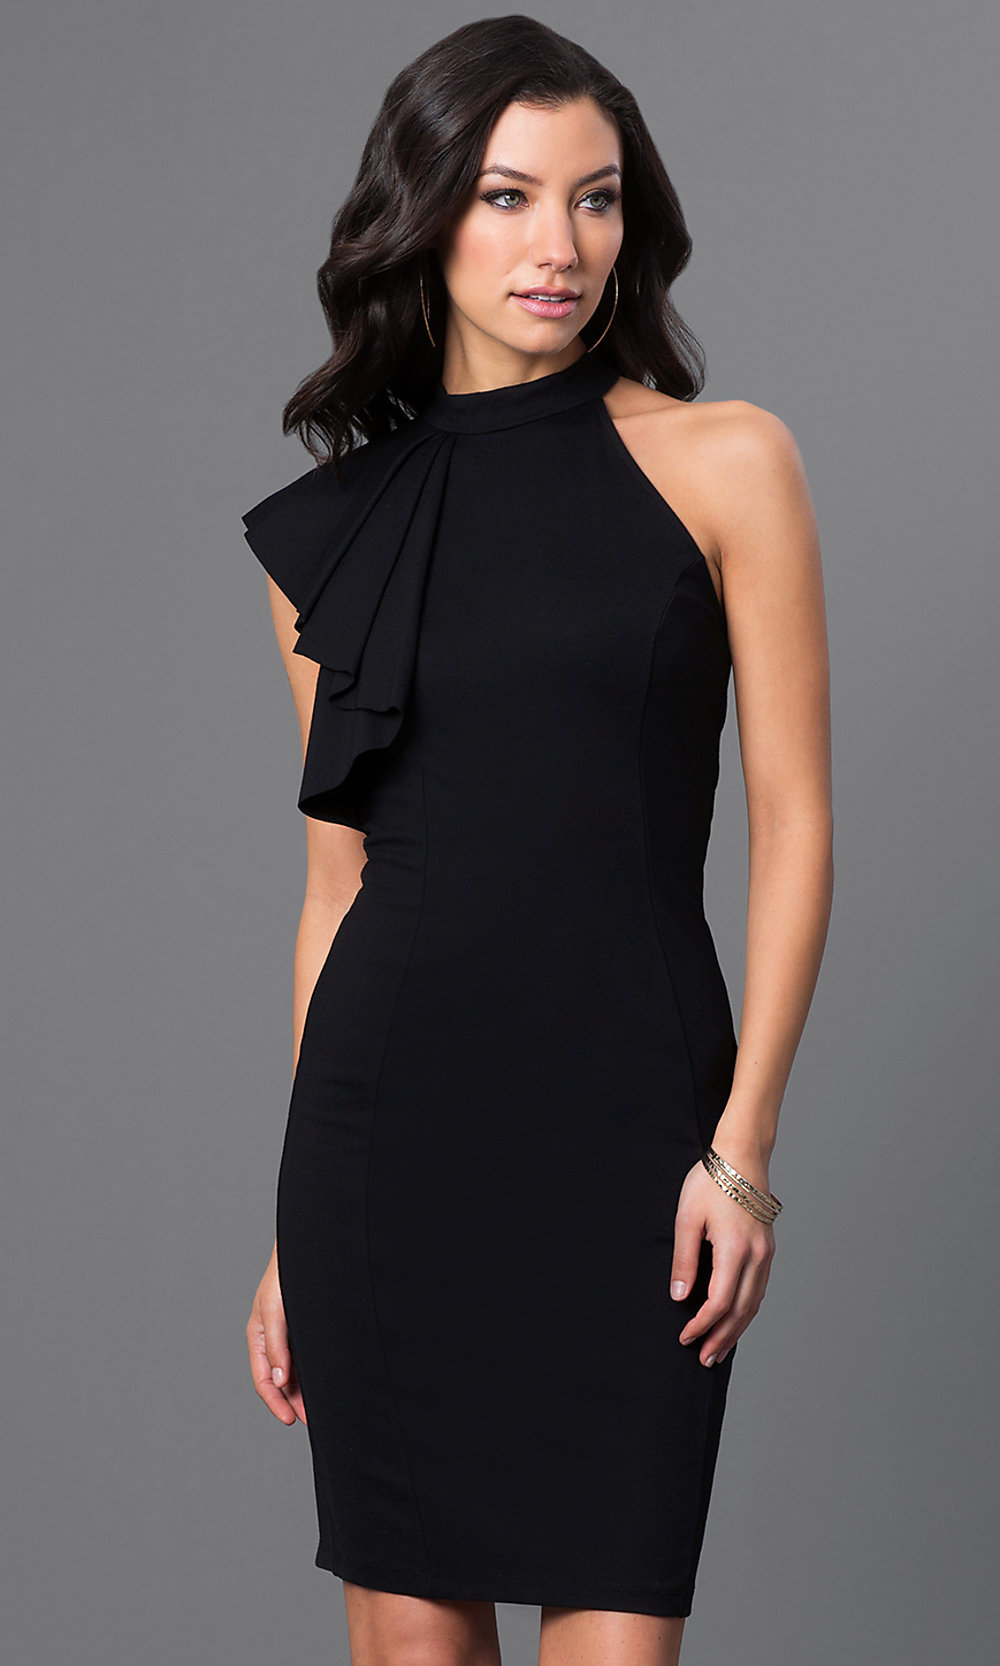 Simple Short Black Dresses